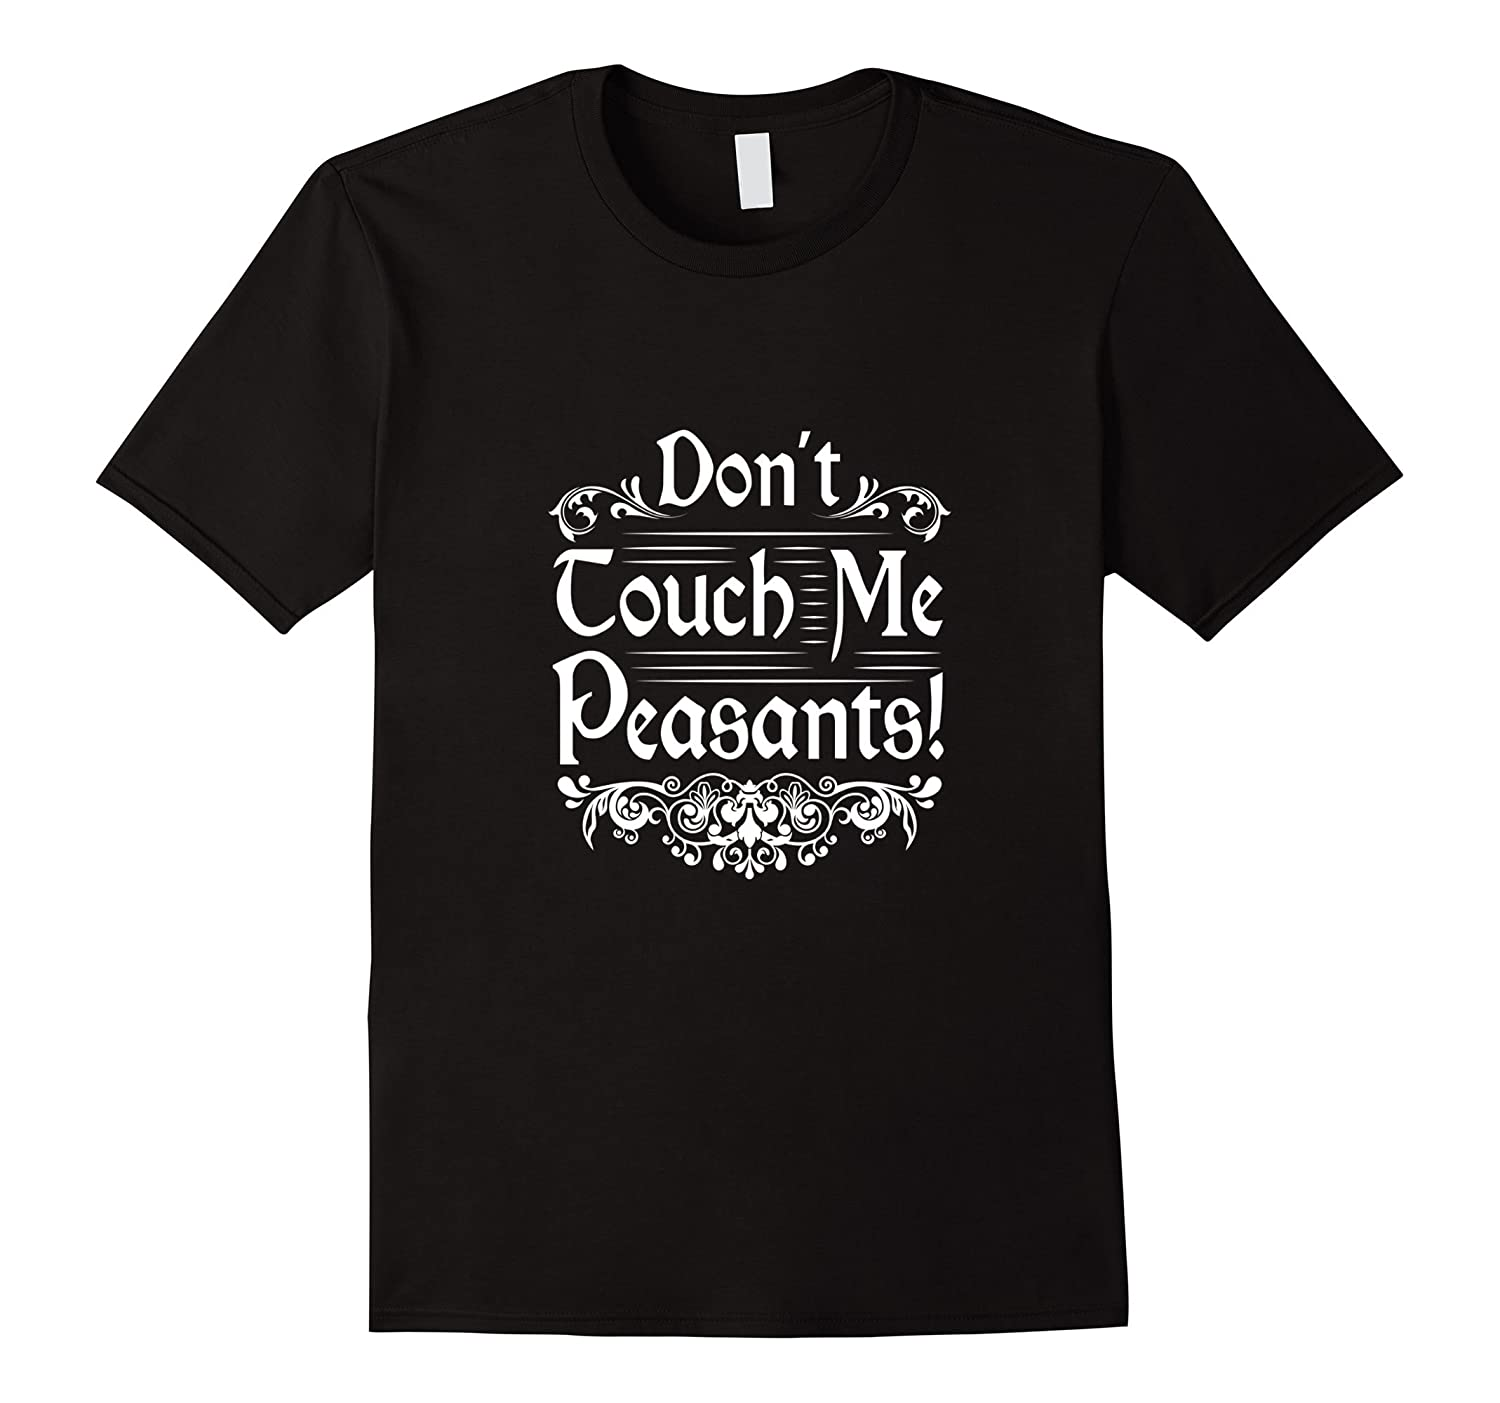 0ba123956 Funny Don't Touch Me Peasants T-Shirt Medieval Knight Dragon-ANZ ...